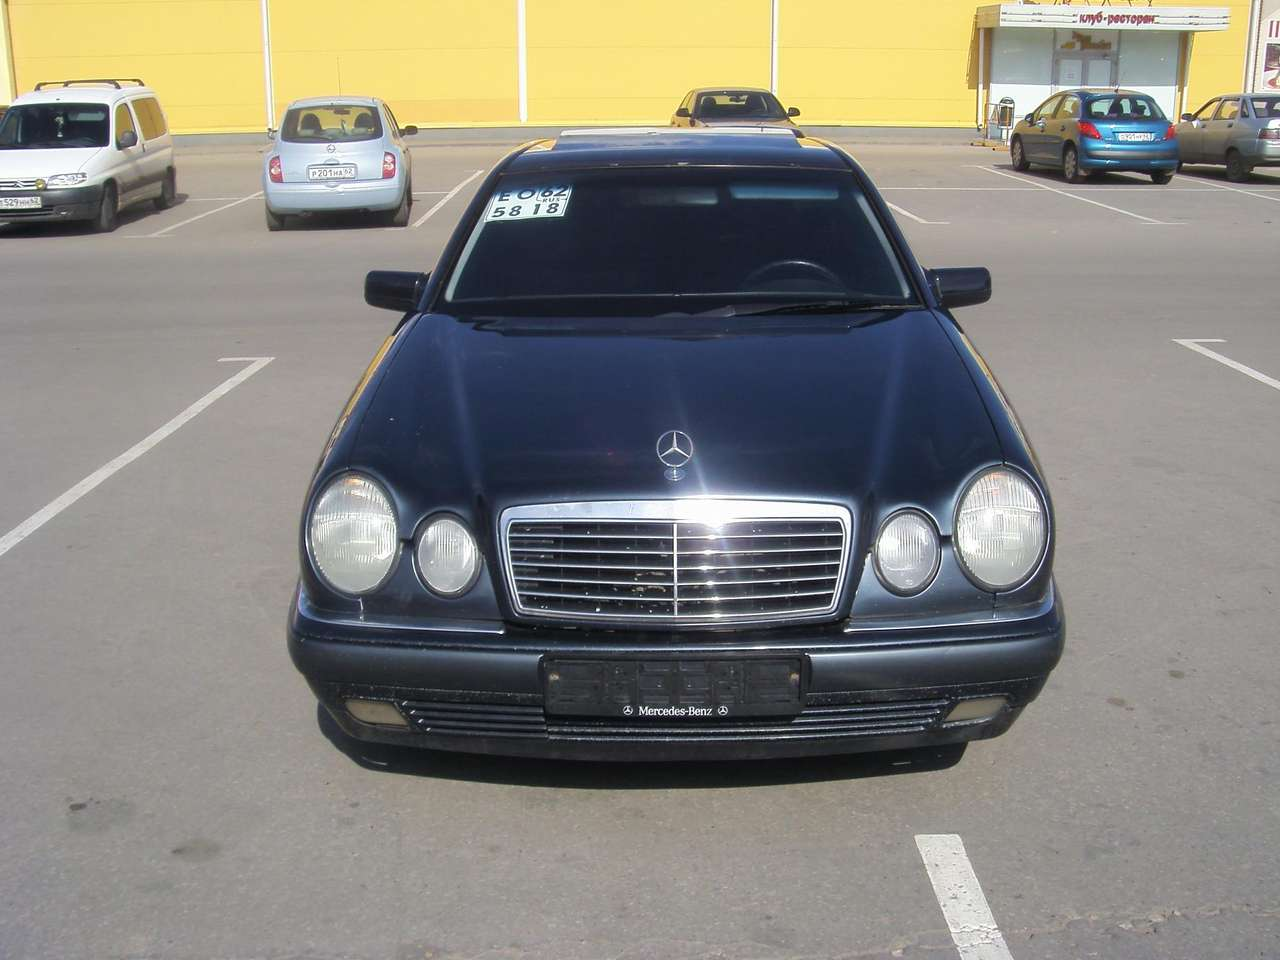 1999 mercedes benz e class photos 2 4 gasoline fr or rr. Black Bedroom Furniture Sets. Home Design Ideas